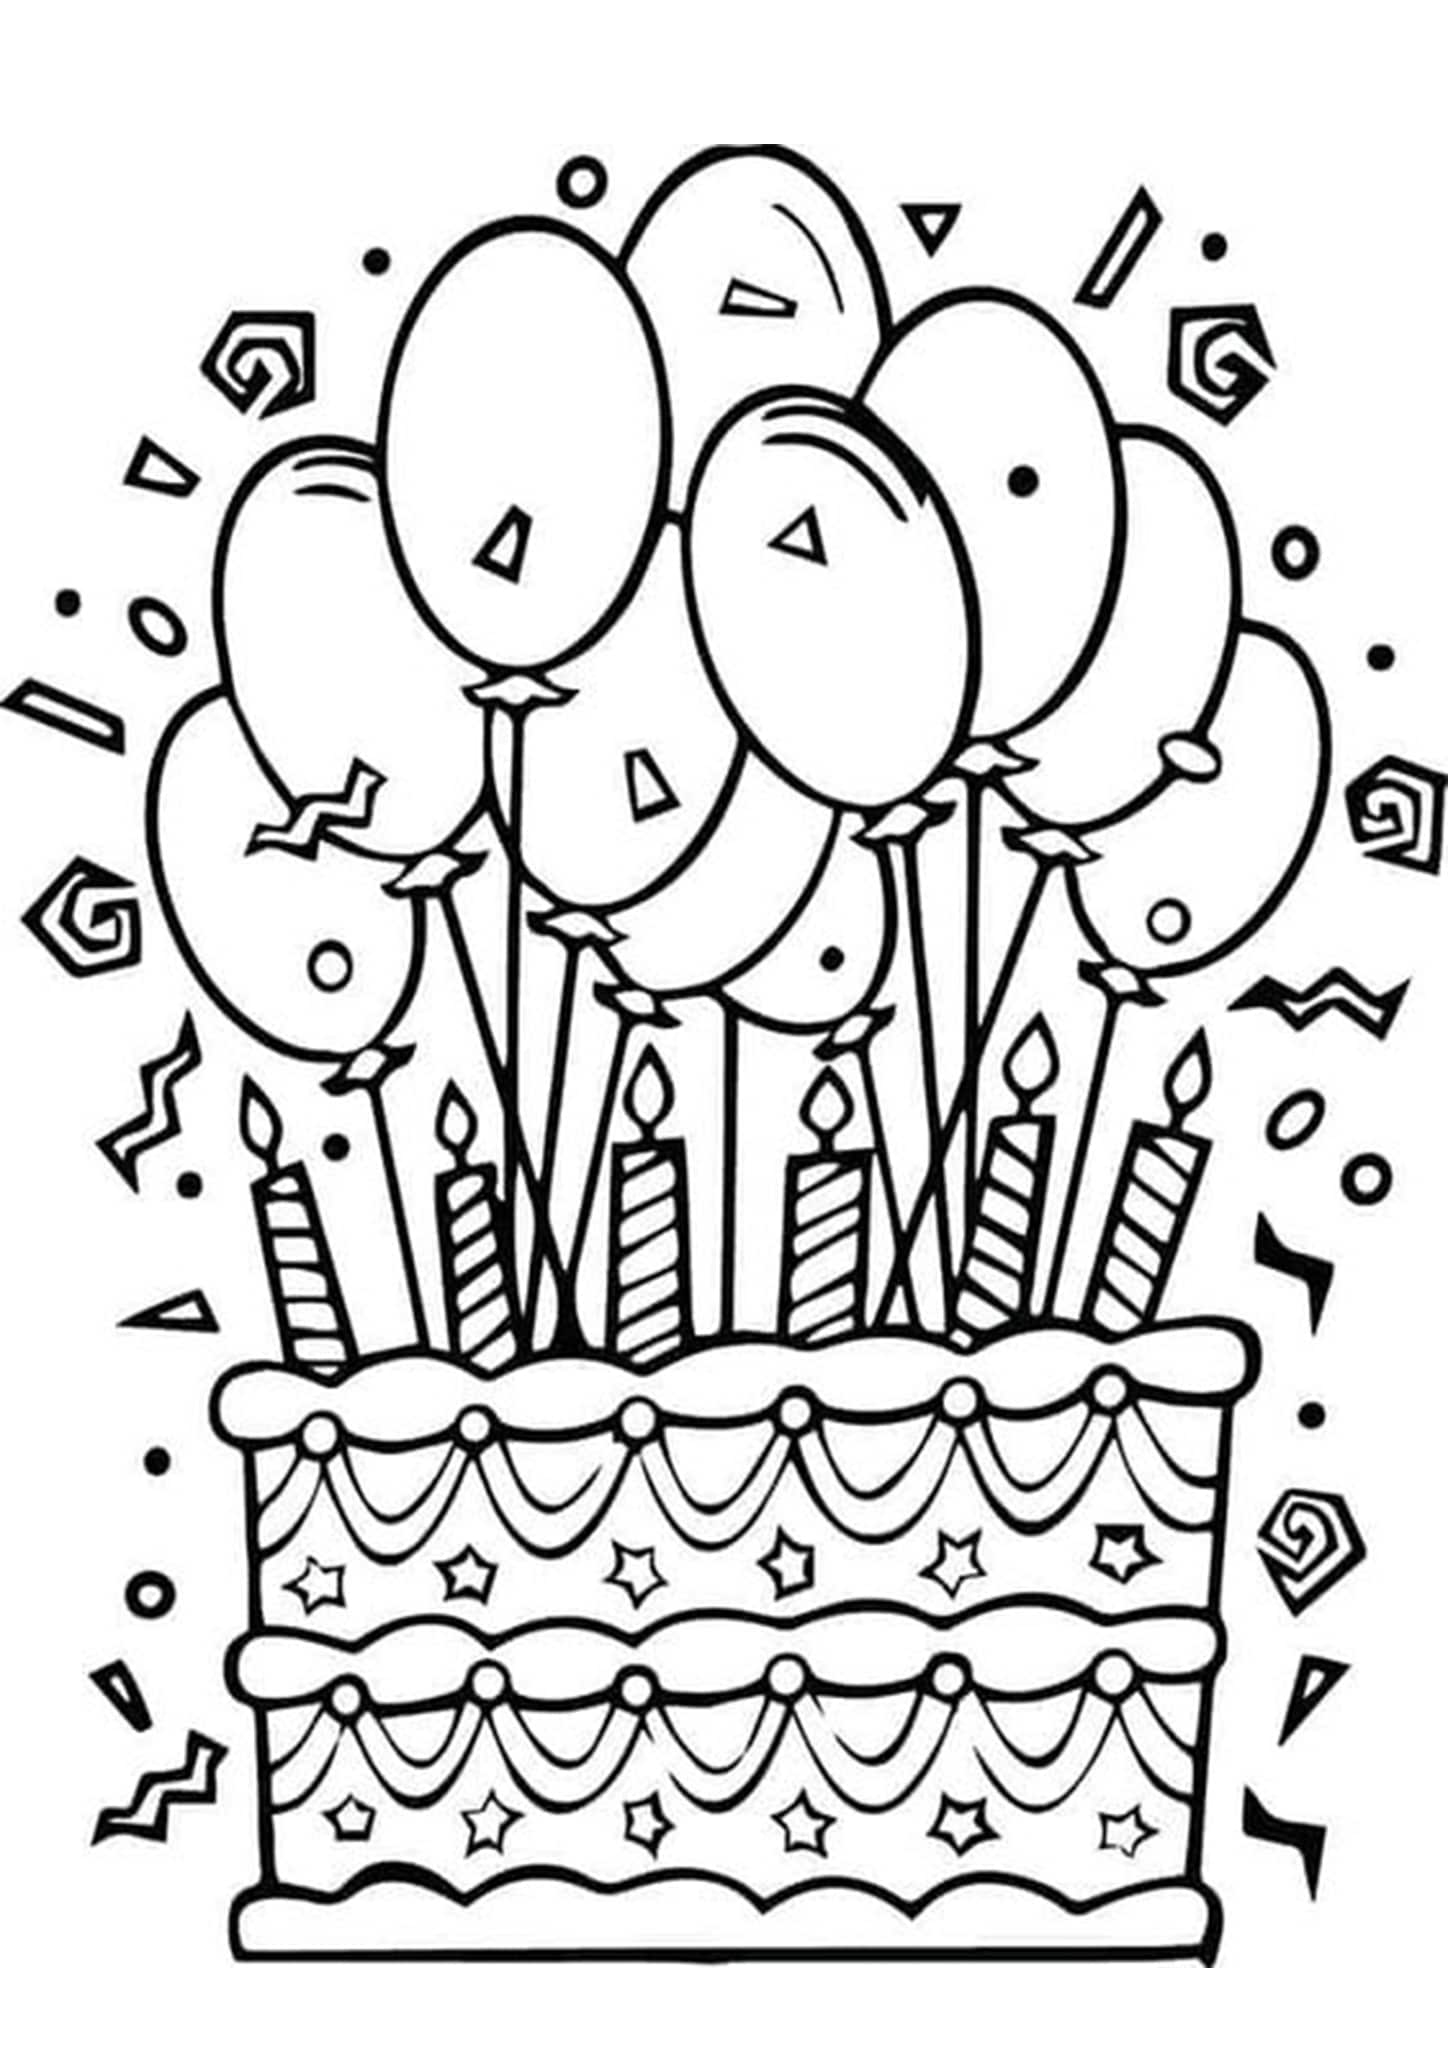 happy birthday coloring pages printable happy birthday coloring card new collection 2020 free coloring pages birthday printable happy